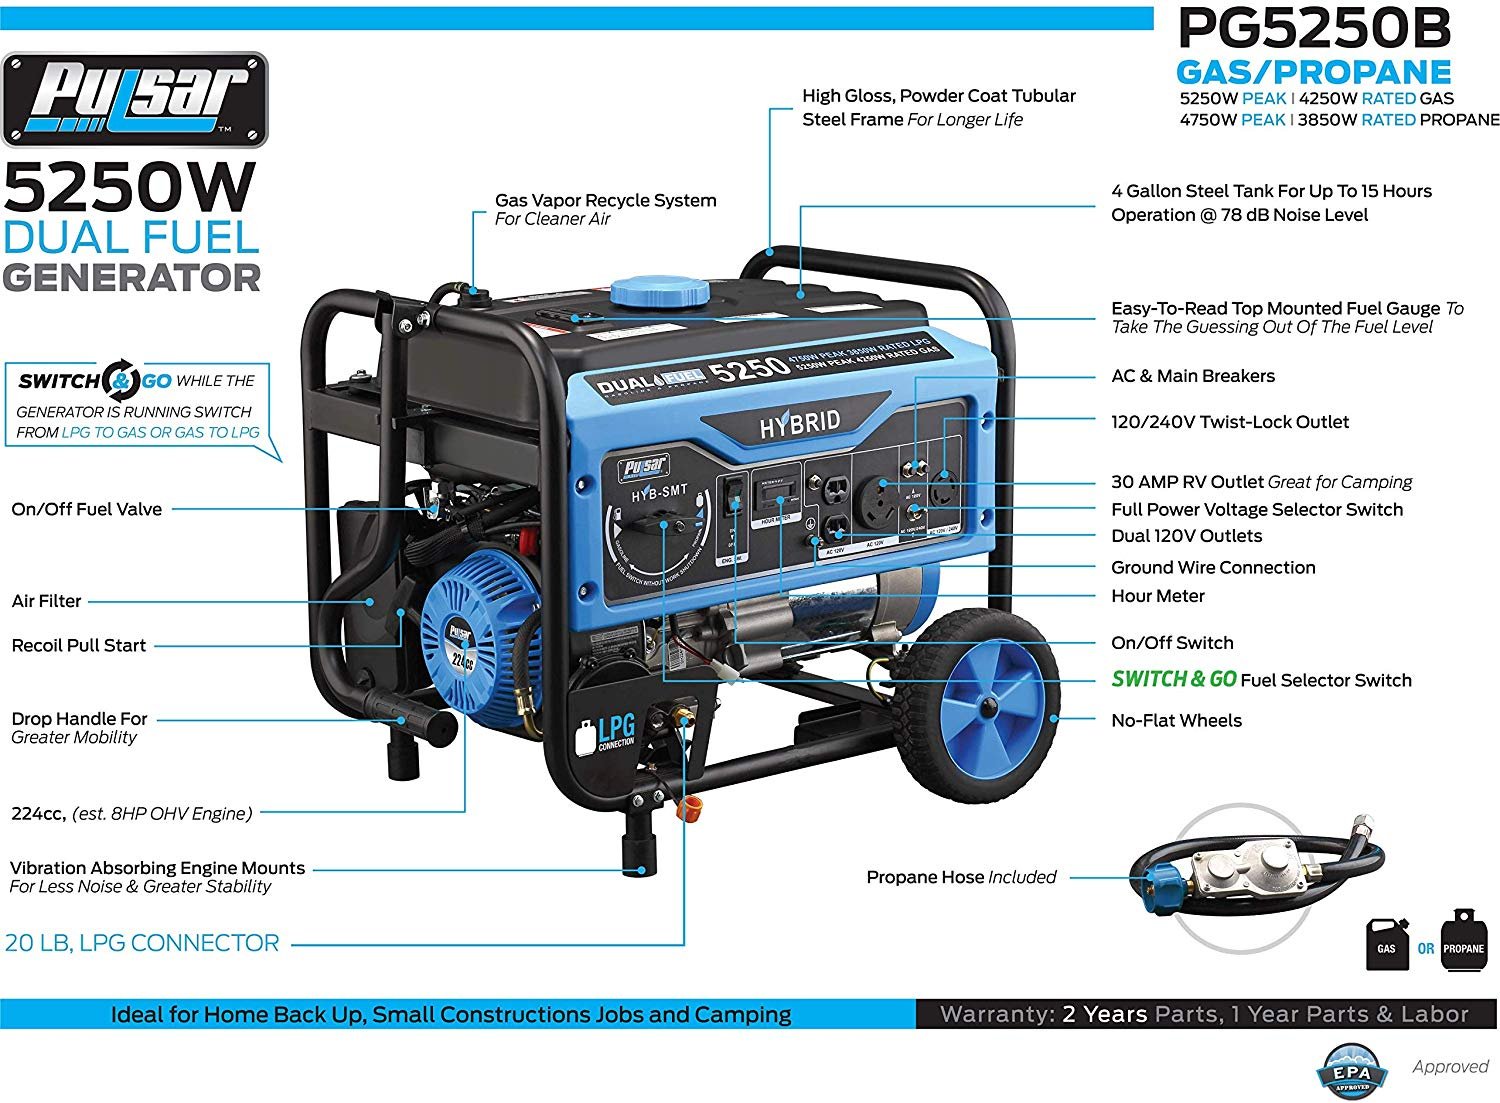 Pulsar 5250W Dual Fuel Portable Generator with Switch & Go